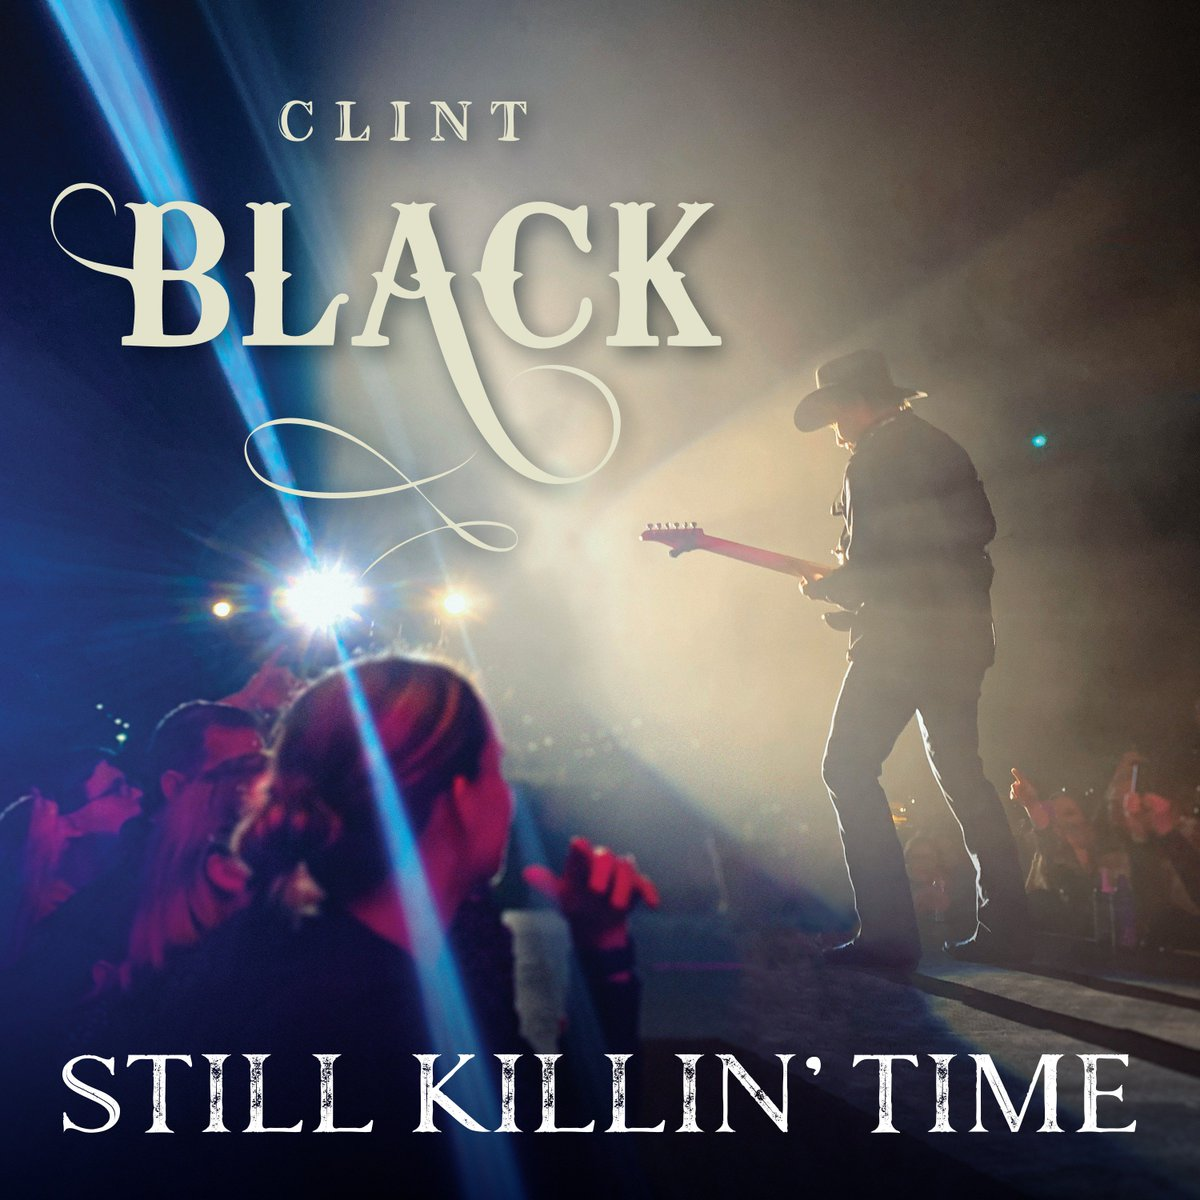 """It's Time… for #OpryMember @Clint_Blacks new LIVE album release! Still Killin Time"""" is out everywhere now! smarturl.it/stillkillintime"""